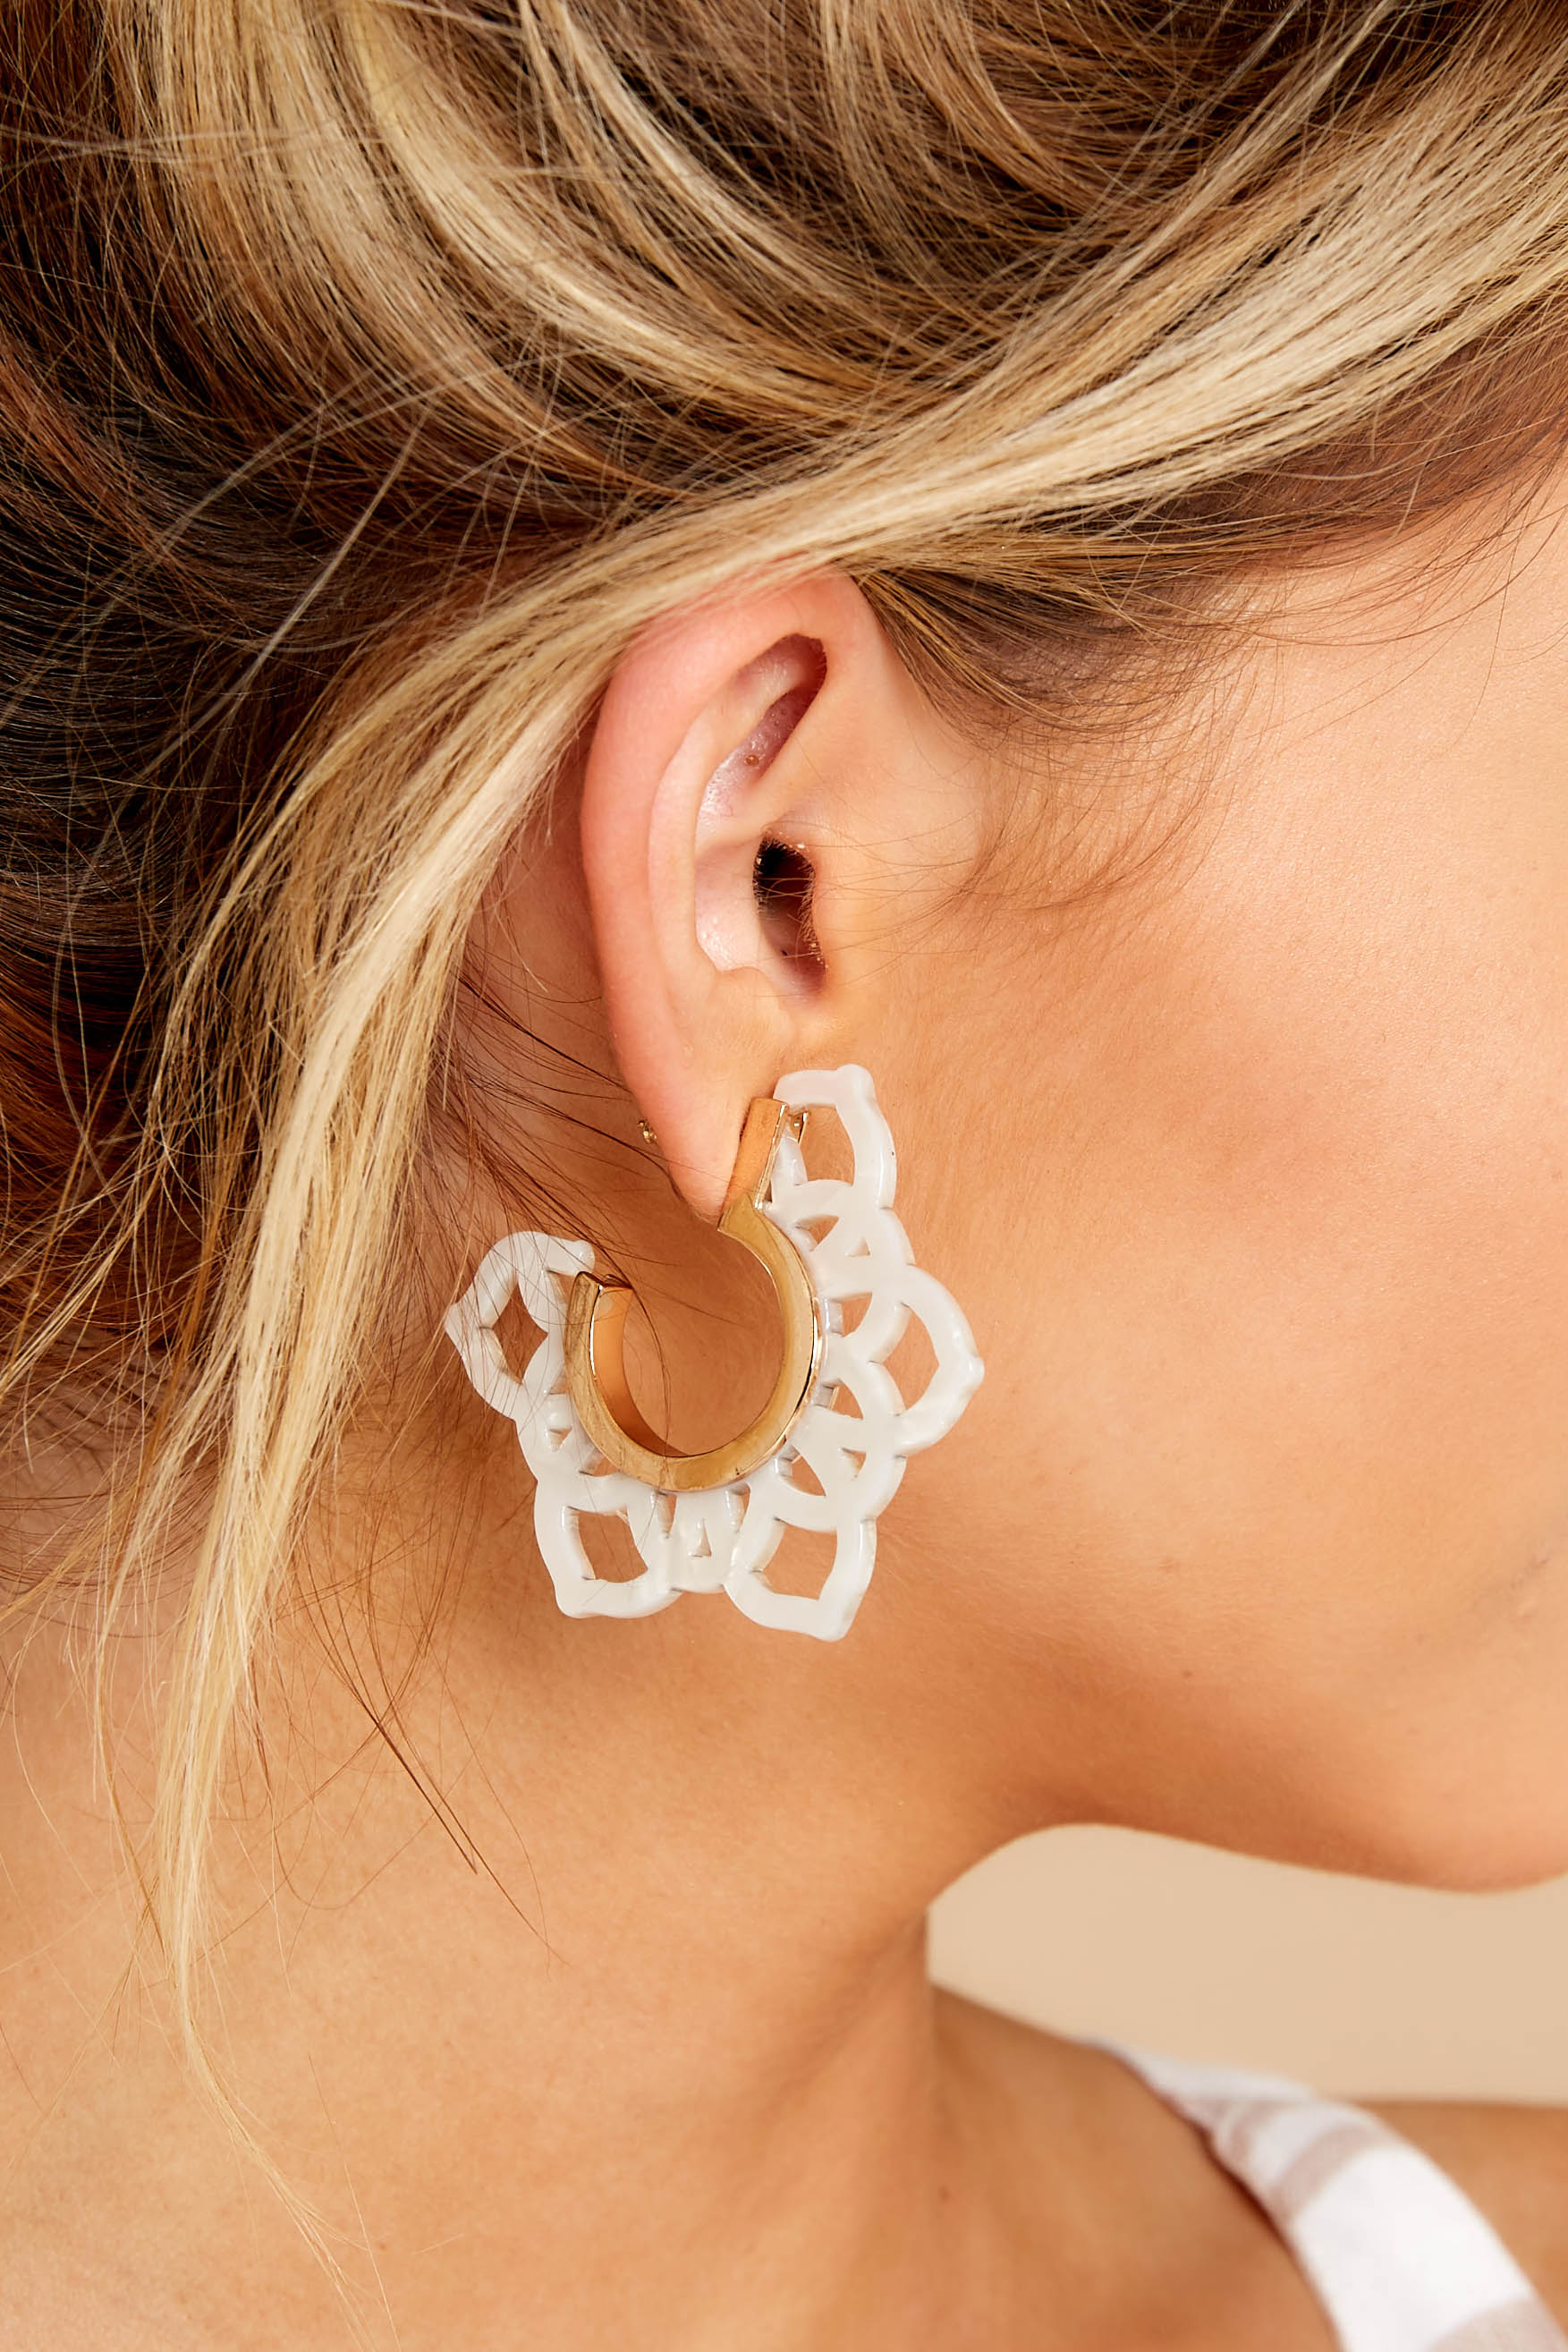 Touch Of Wonder White Acrylic Earrings